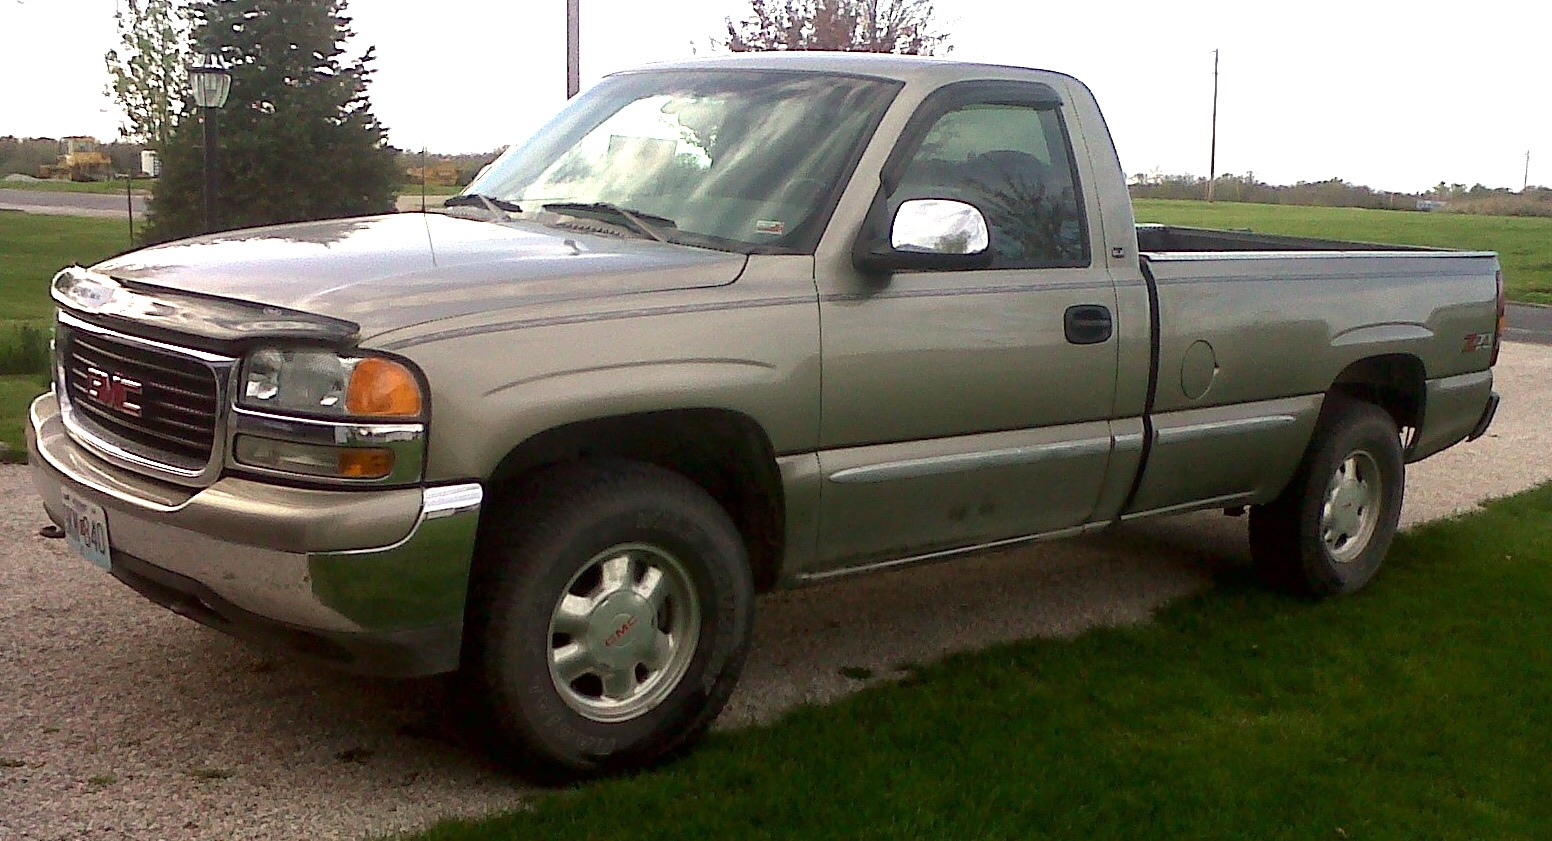 hight resolution of so i purchased my first truck today a 2003 gmc sierra z 71 it has the 4 8l and a 5 speed manual since this is my just truck i was wondering what i should